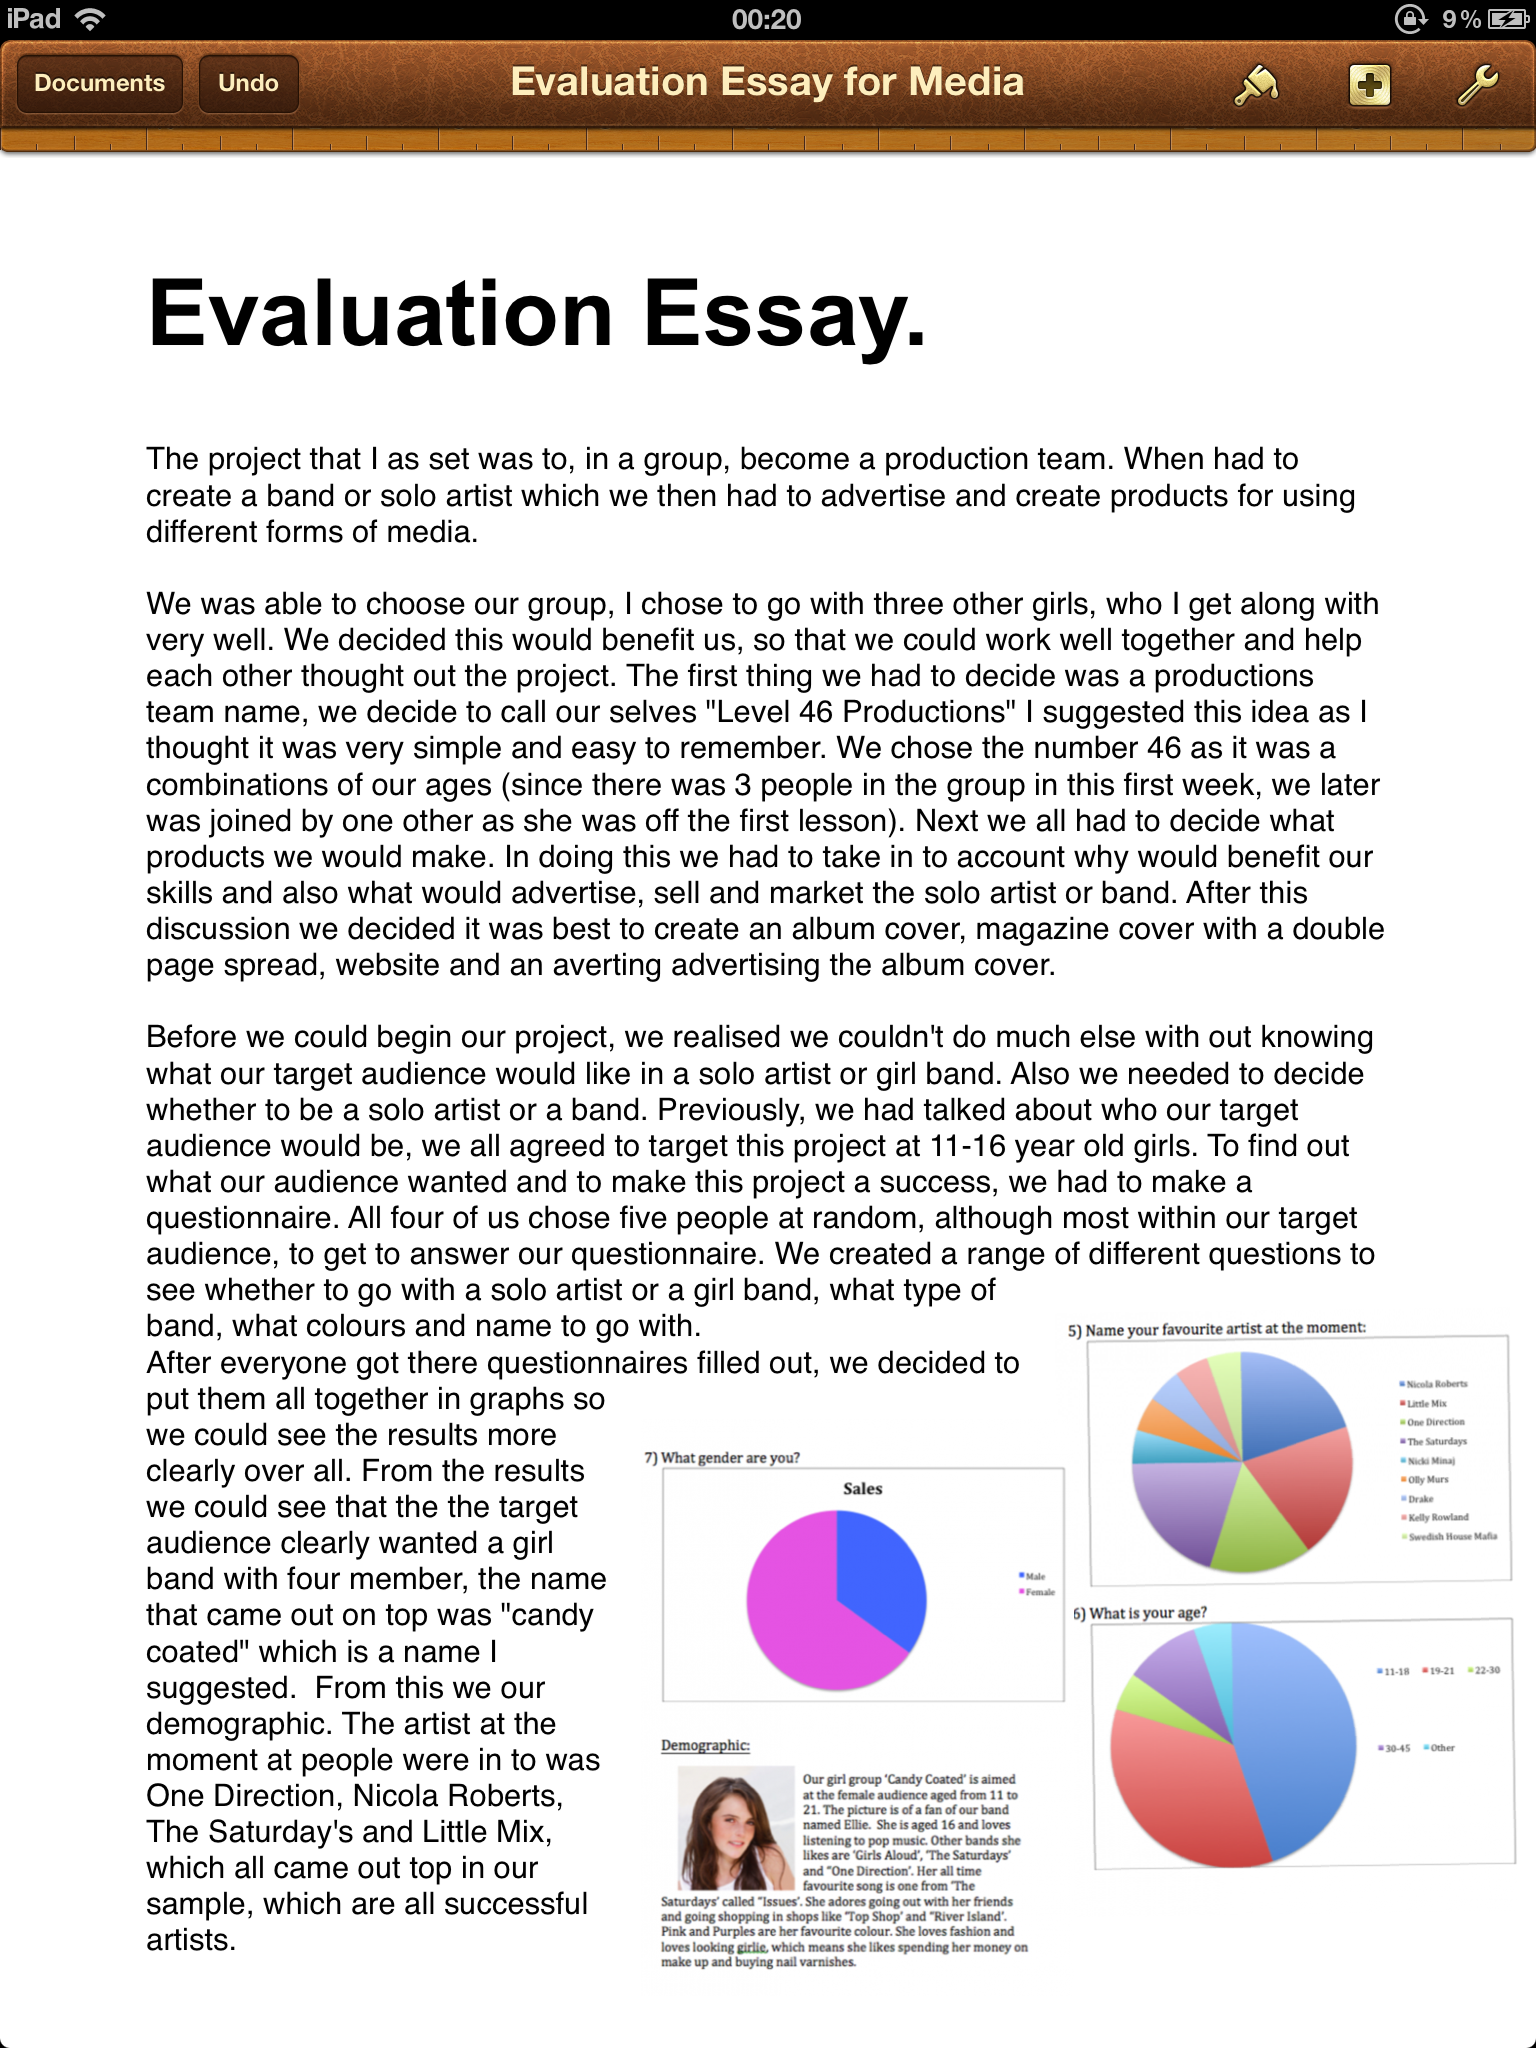 010 Pg Essay Example Incredible Evaluation Unique Topics On Horror Movies Definition Full